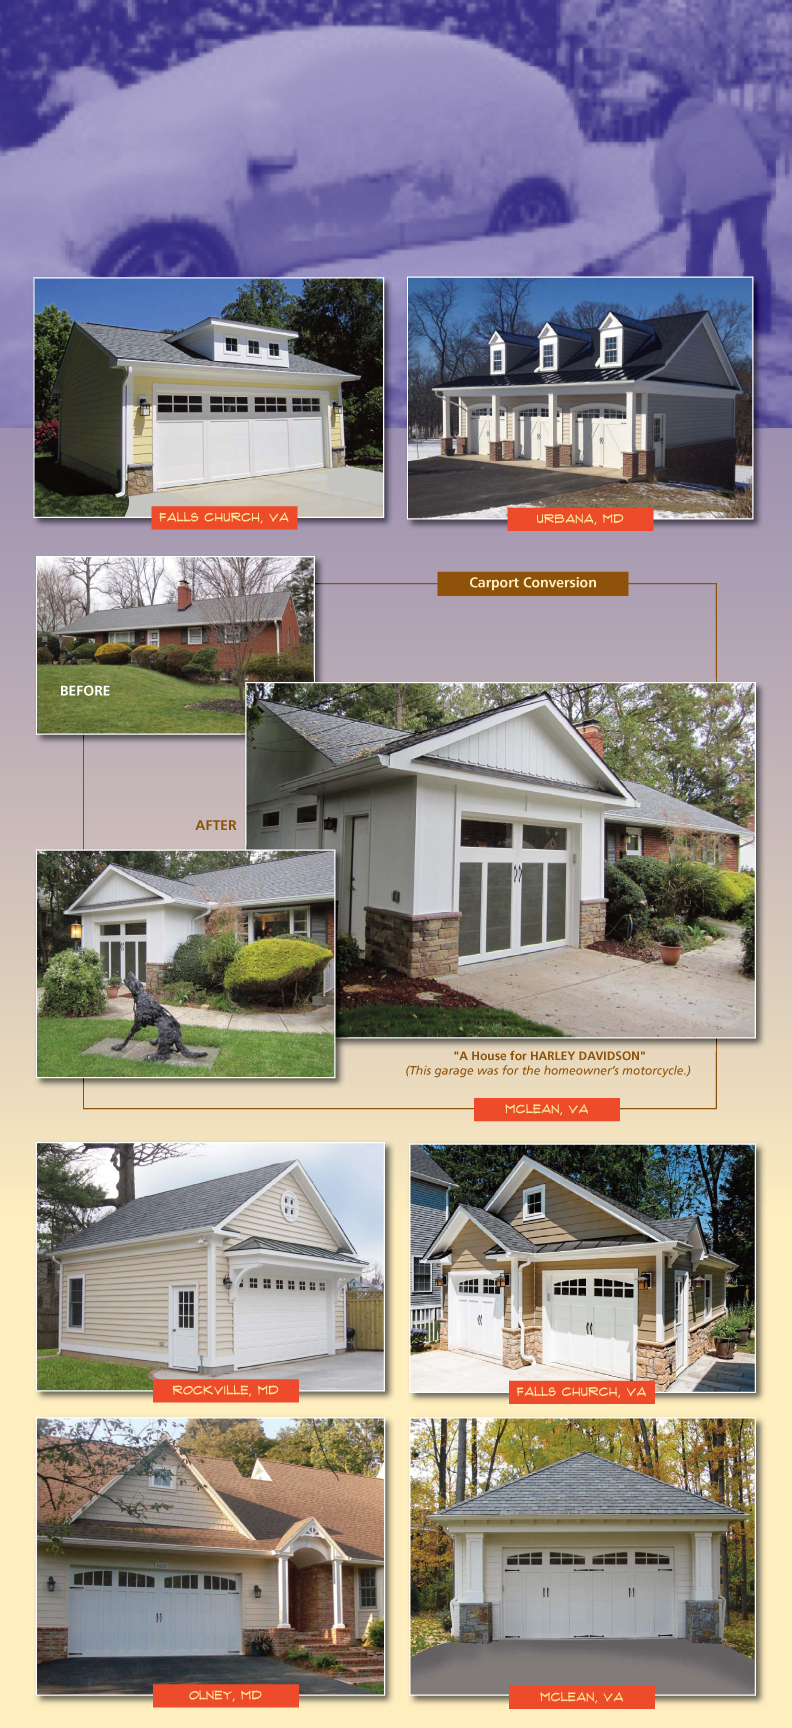 Home Remodeling Design Build Renovations Additions Kitchens ... on